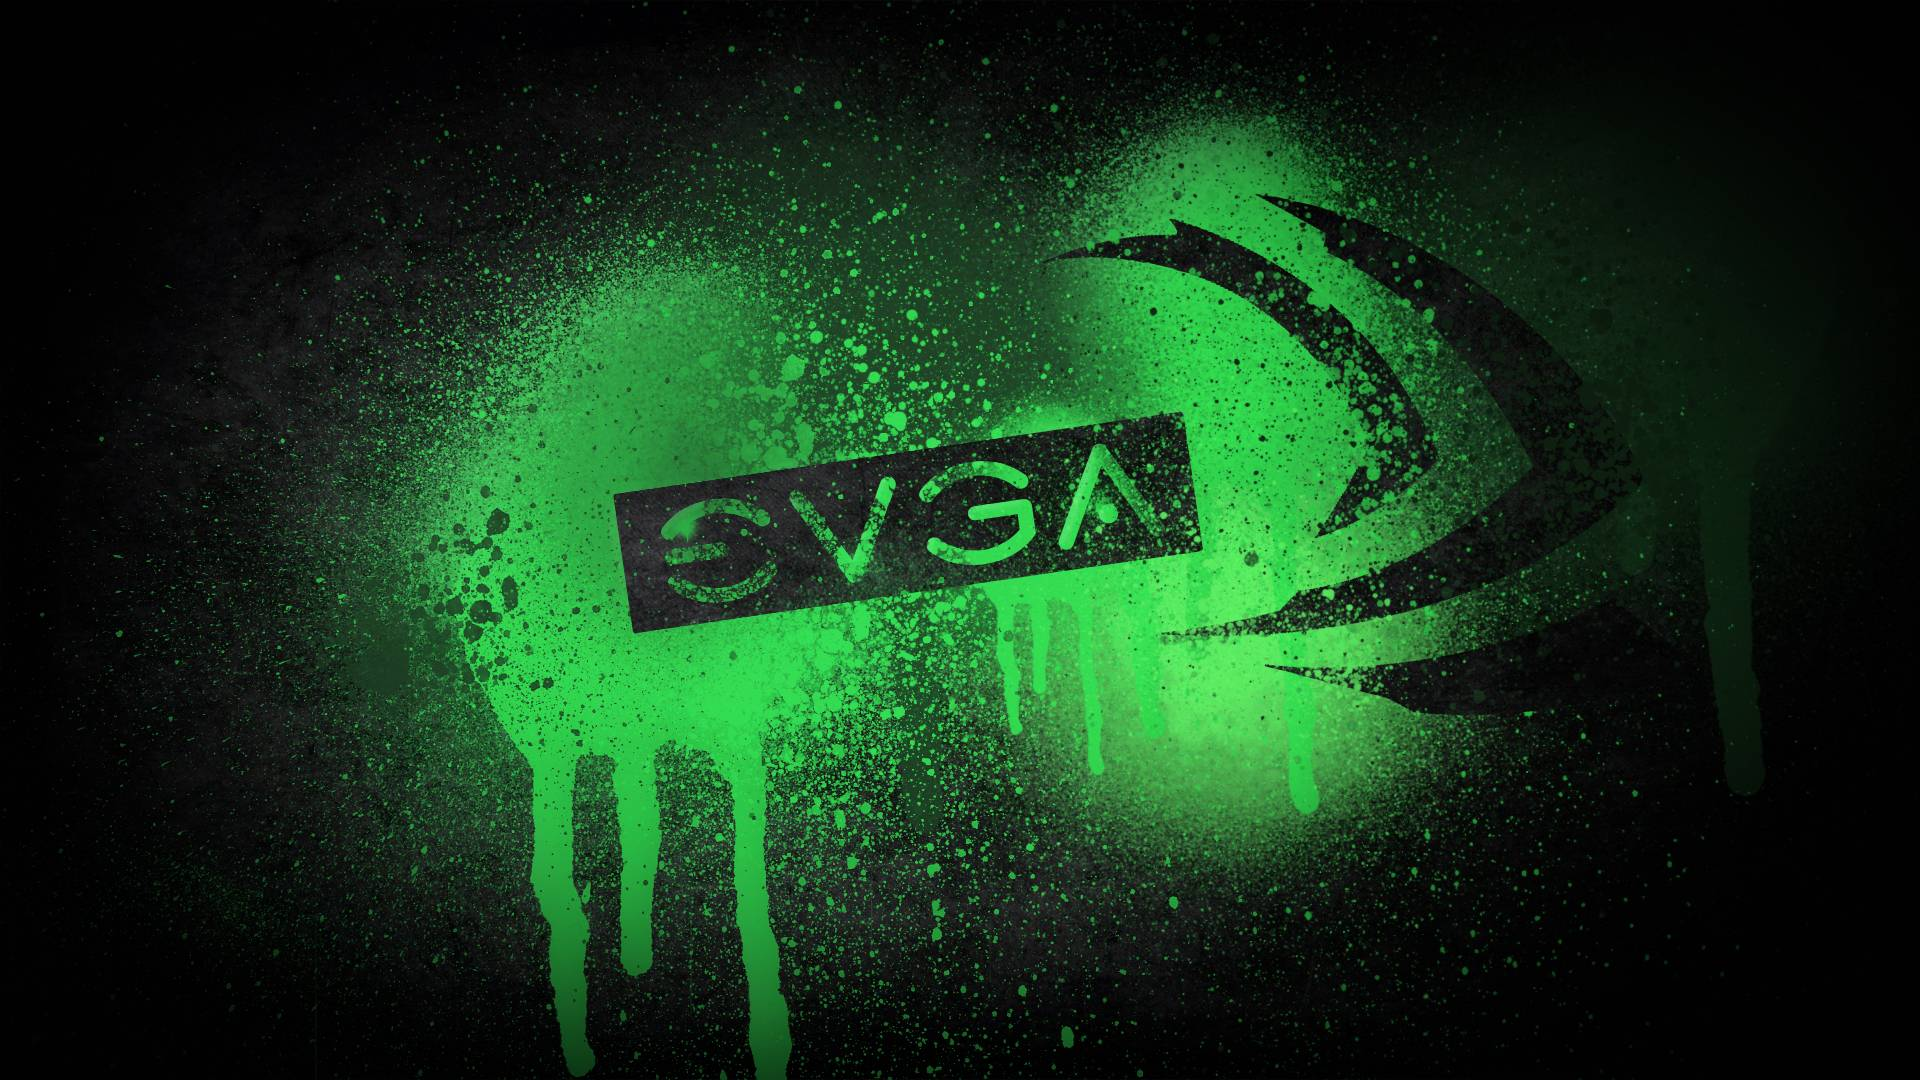 Evga Wallpapers HD – Wallpapercraft